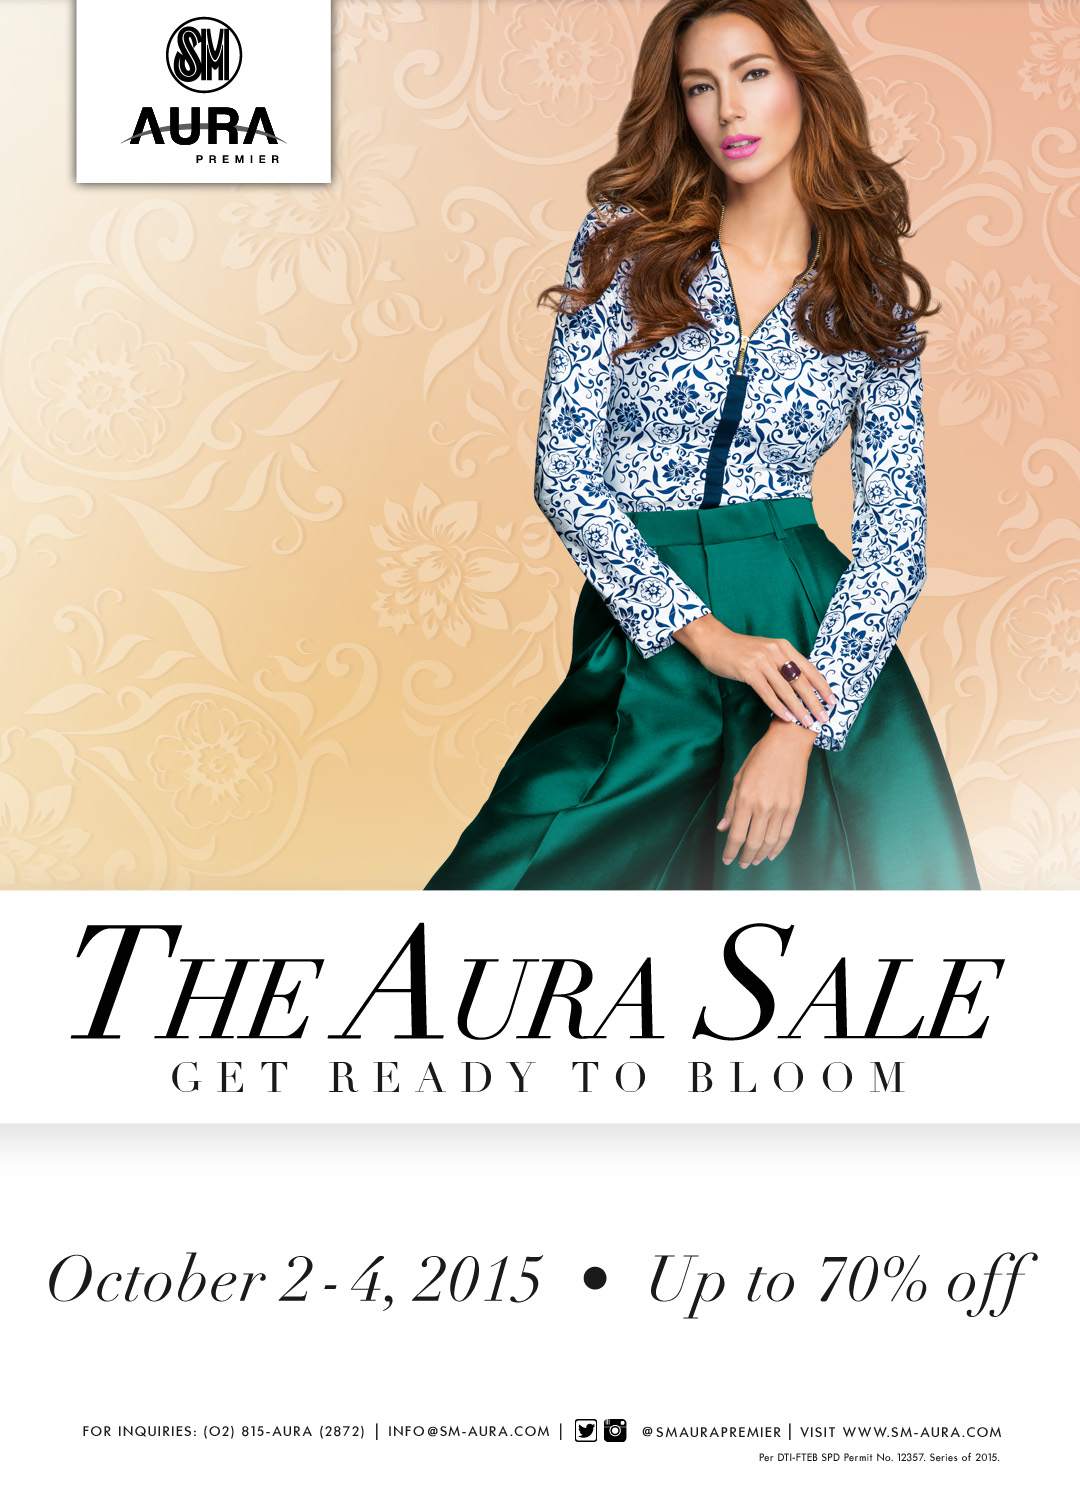 SM Aura Premier 3-Day Sale October 2015